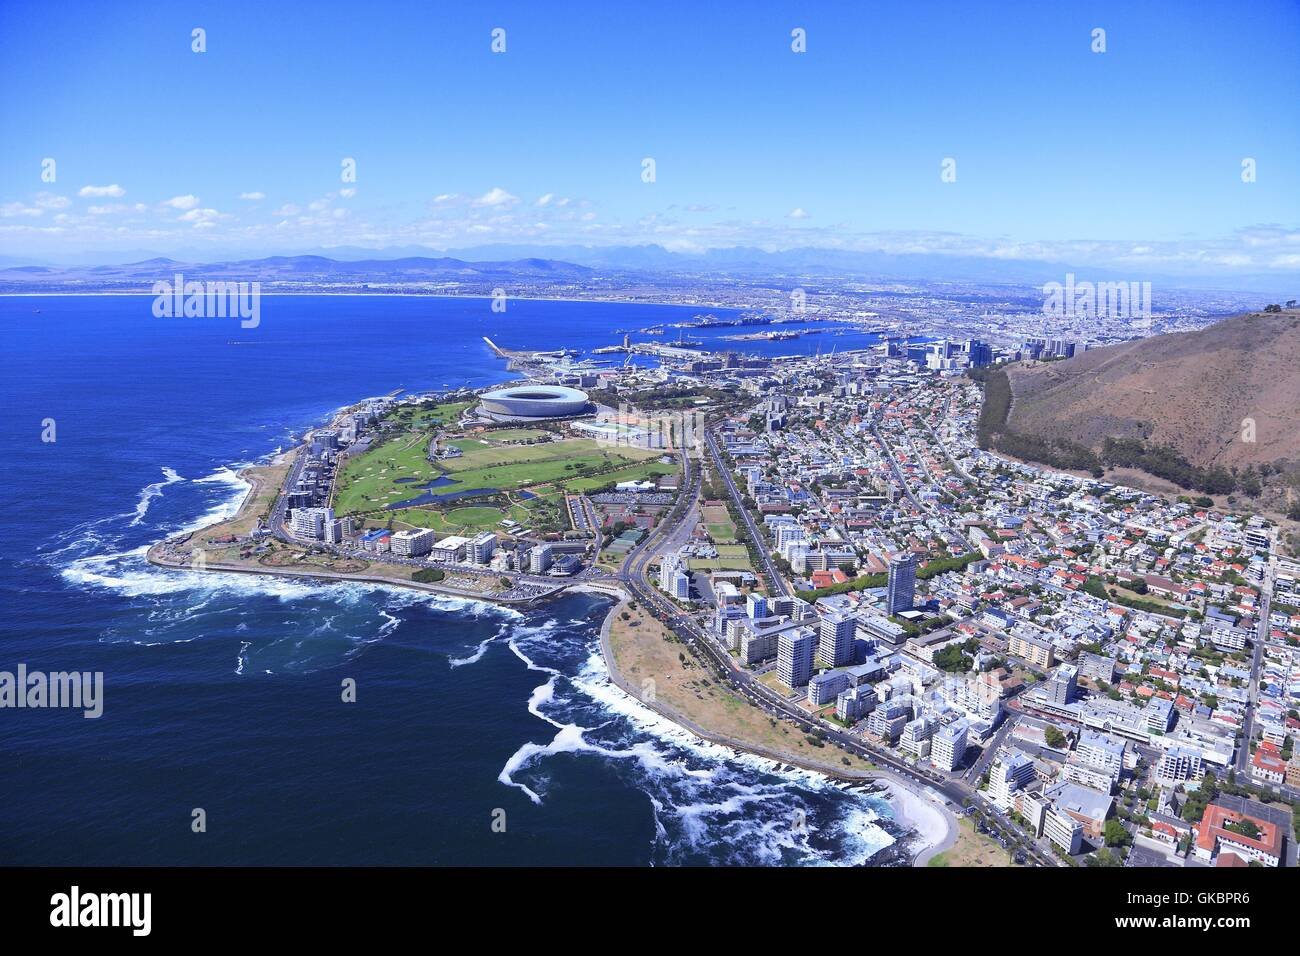 Aerial View Of Parts Of Capetown With The Green Point District L